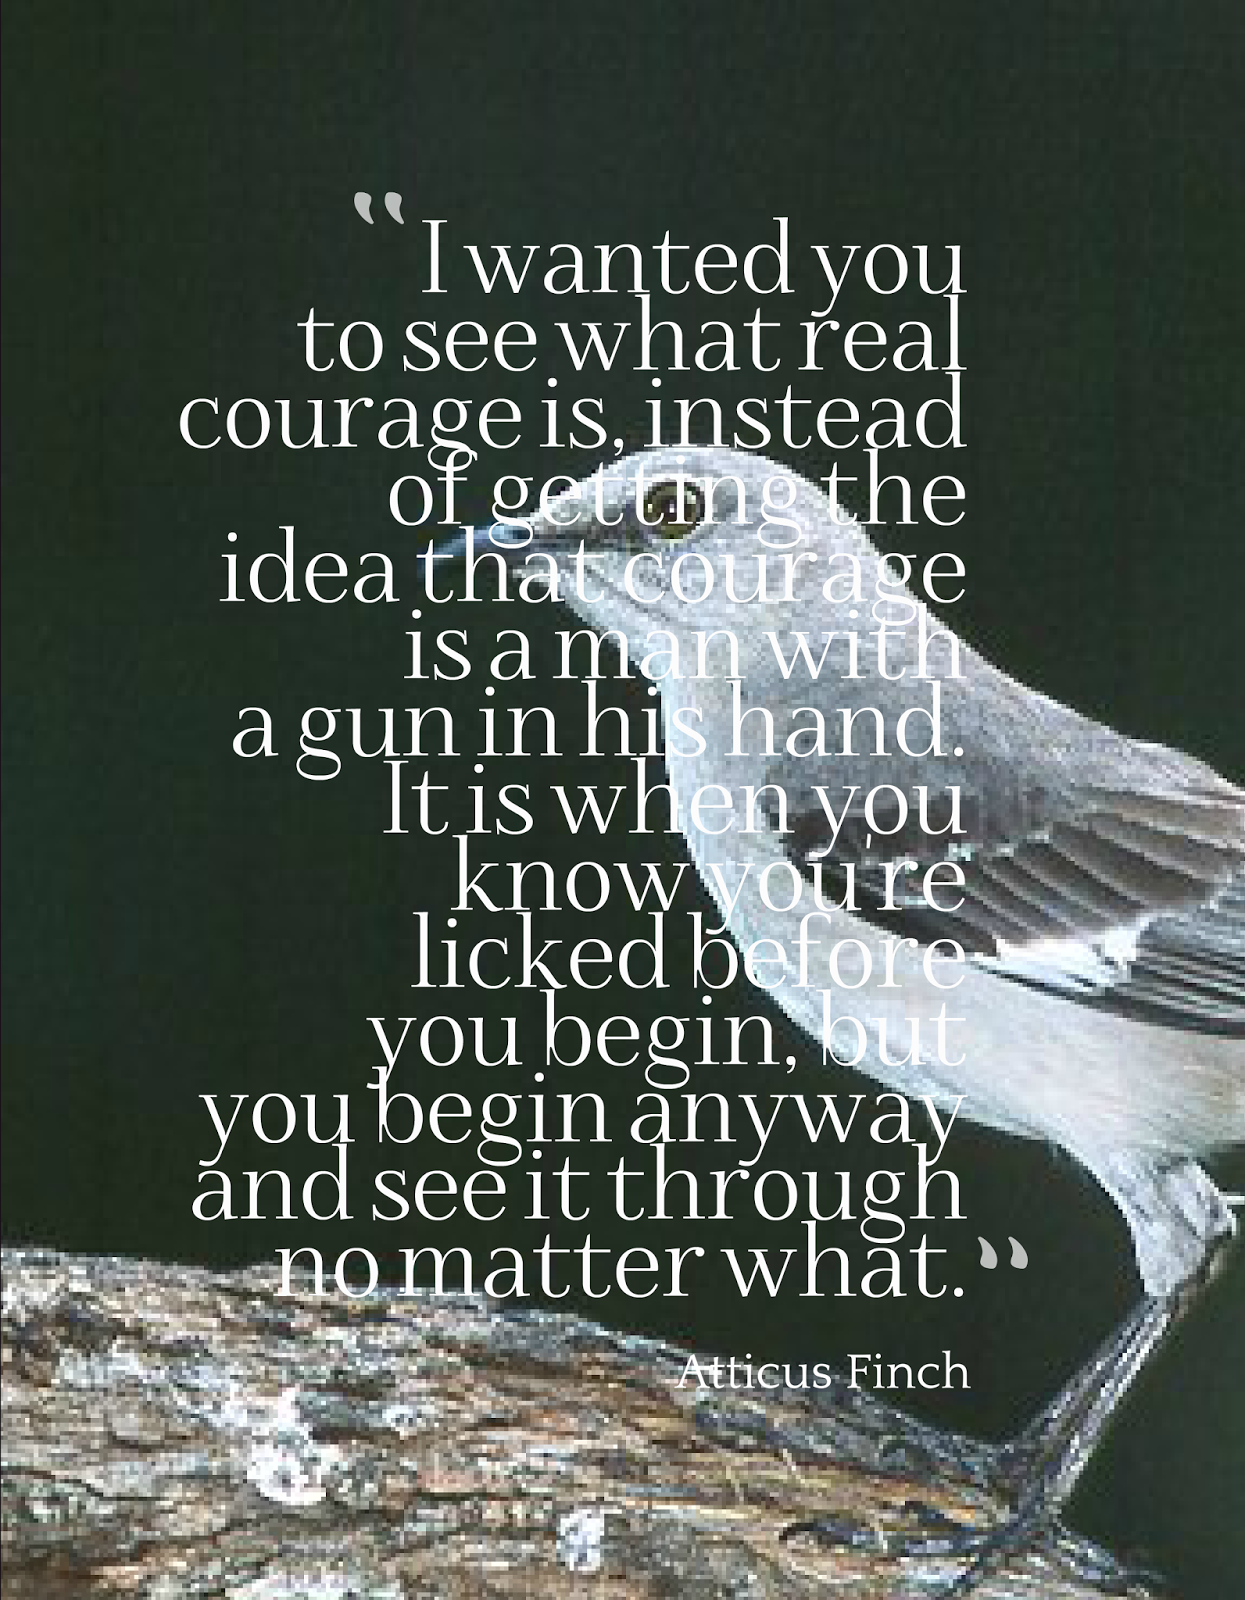 to kill a mockingbird courage To kill a mockingbird courage essay - hire top writers to do your essays for you cooperate with our writers to get the top-notch essay following the requirements 100% non-plagiarism guarantee of unique essays & papers.